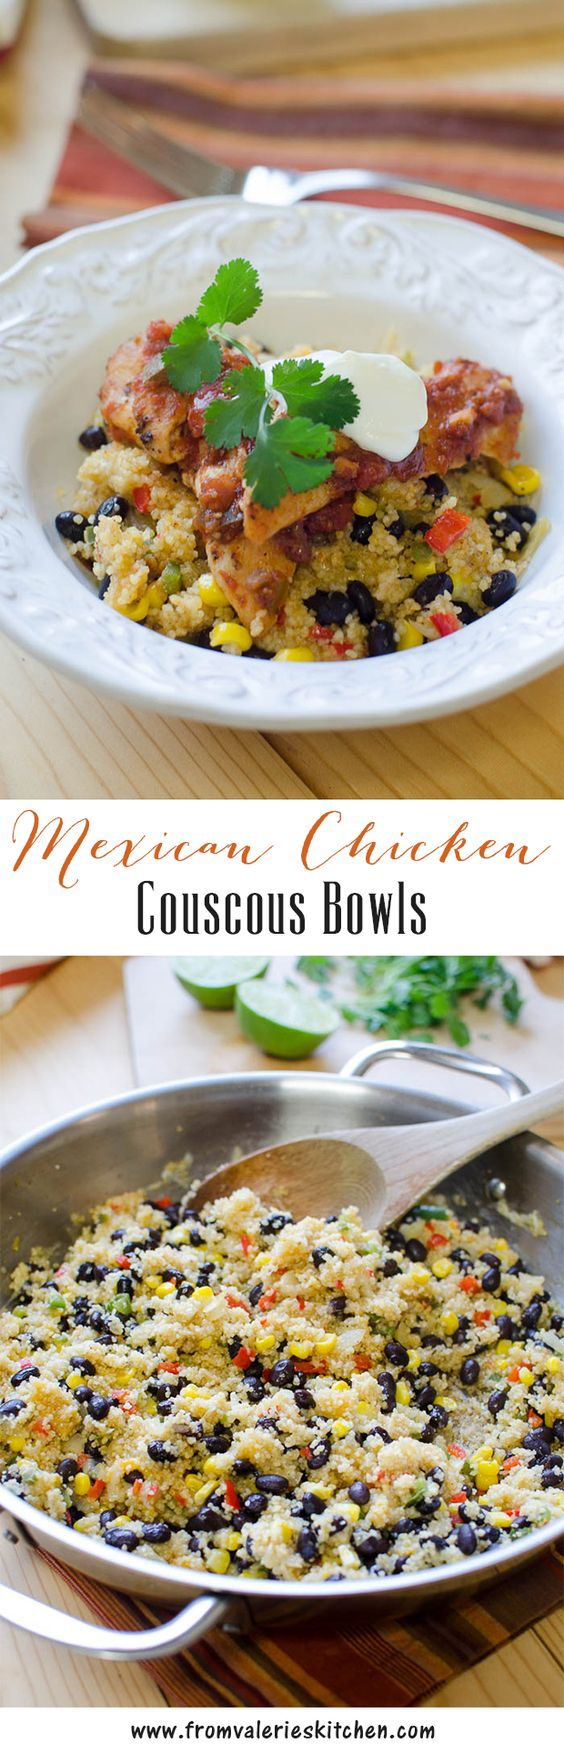 A wholesome, Mexican-inspired chicken couscous dish that is ready in under 30 minutes! ~ @sargentocheese #ChoppedAtHome